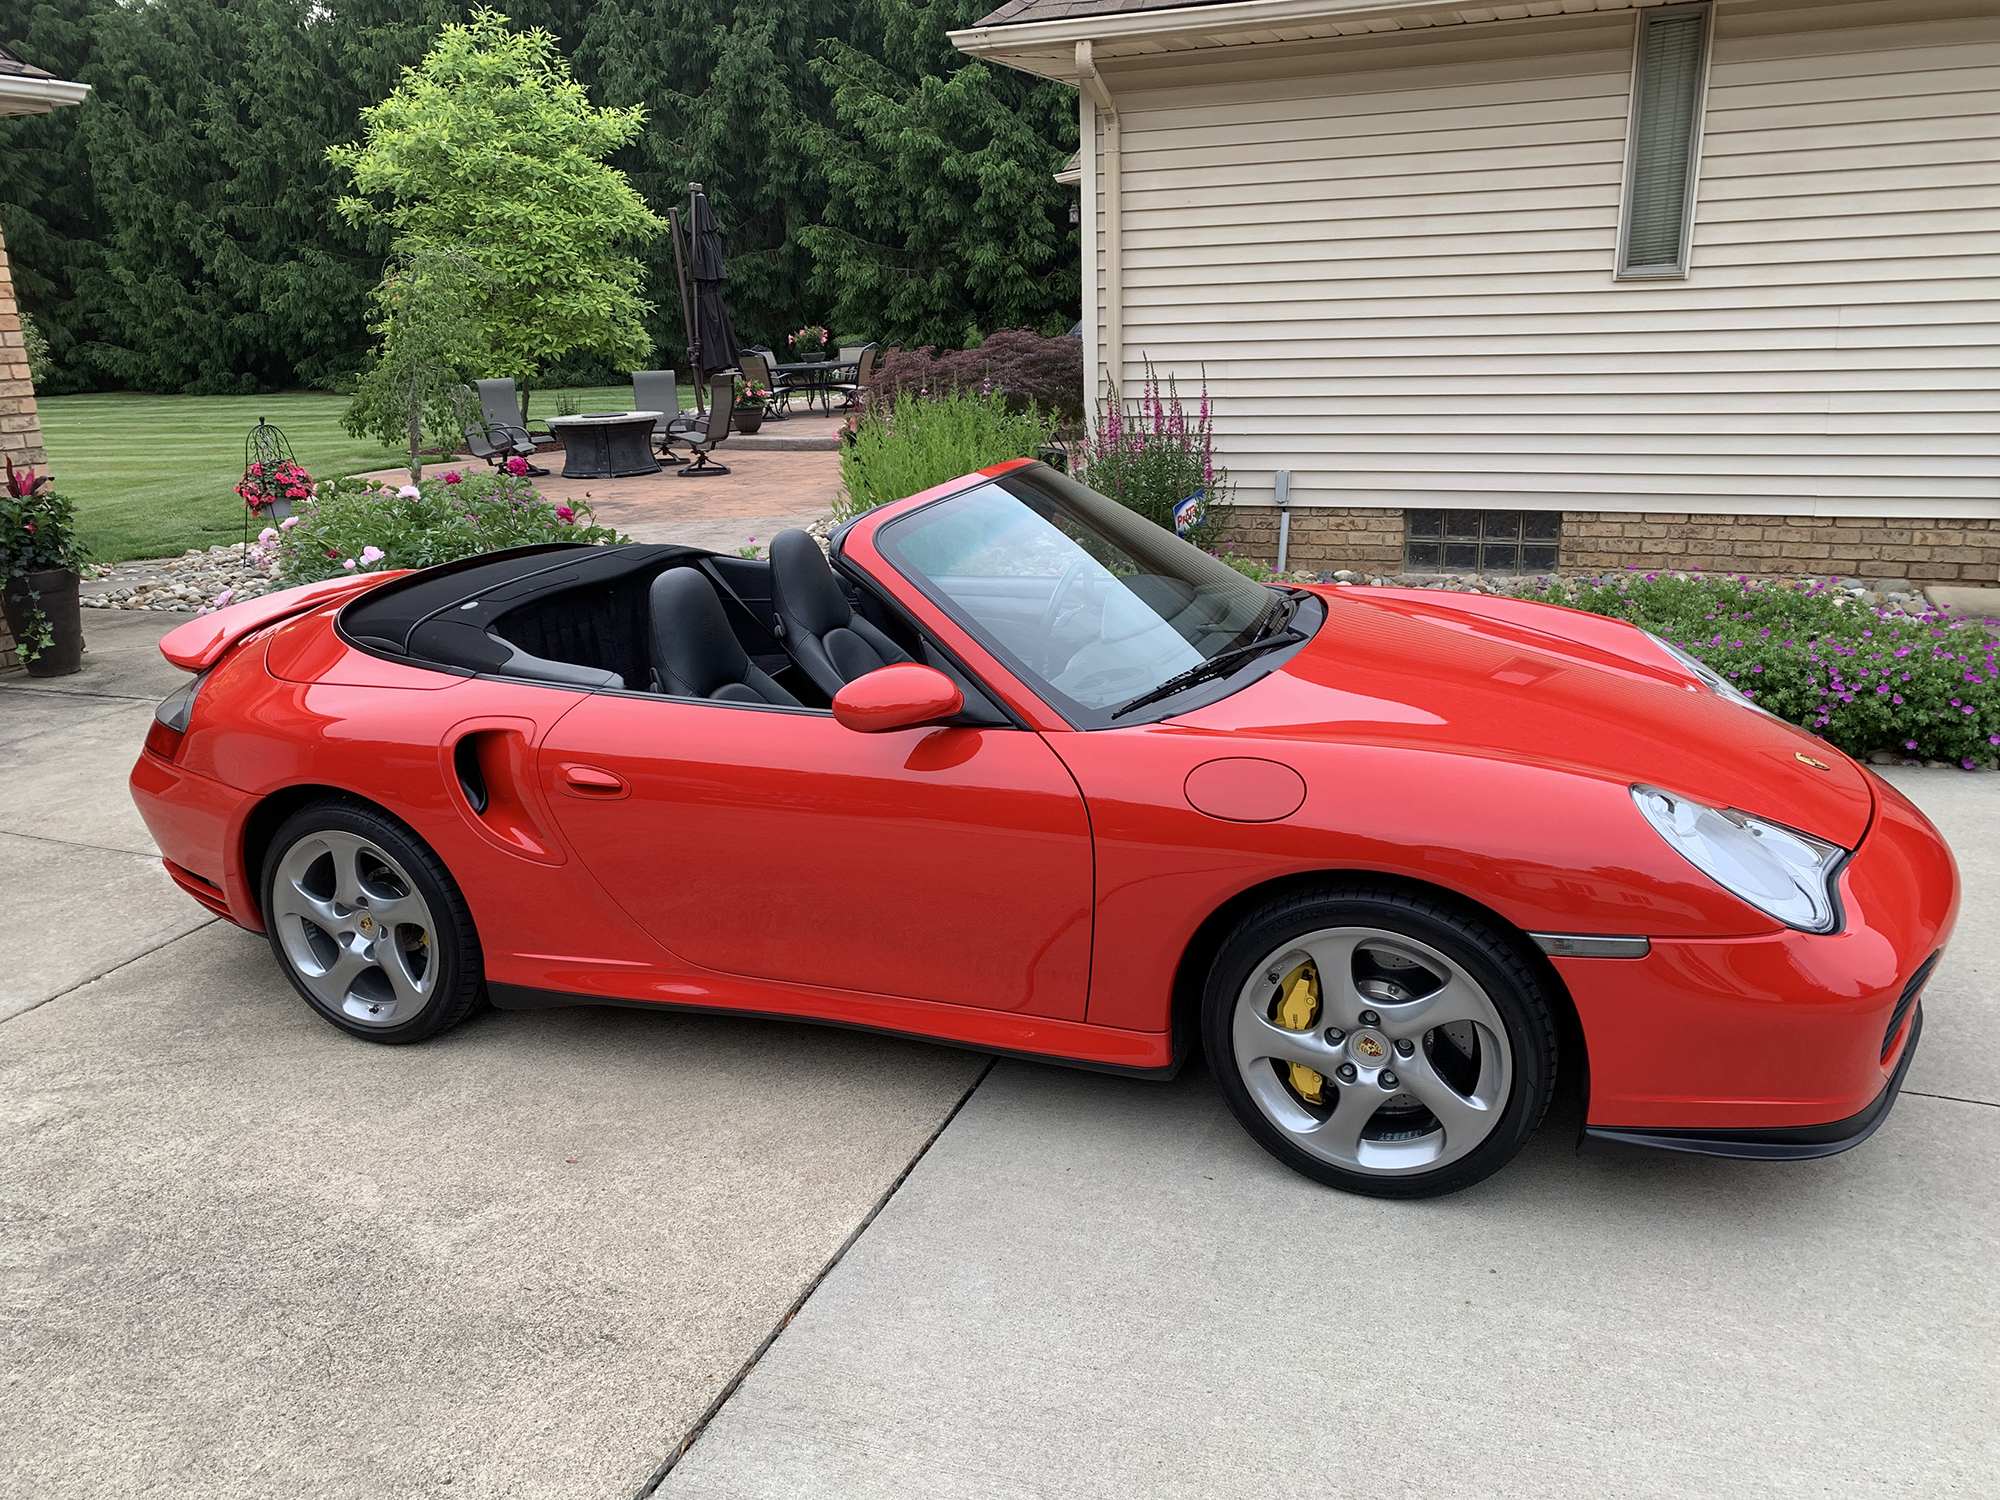 2005 Porsche 911 Turbo S Cabriolet in Guards Red